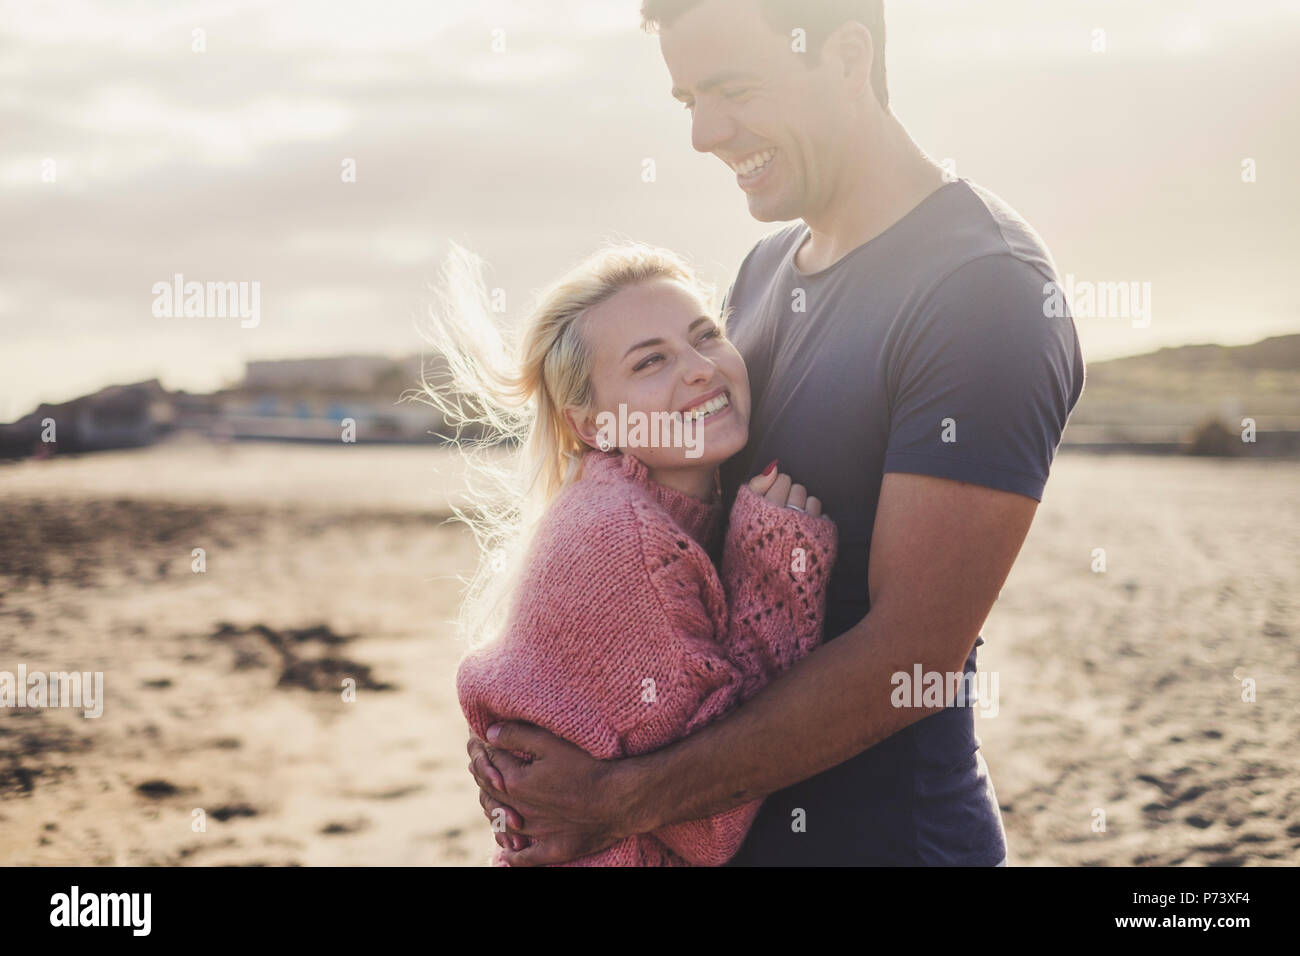 aucasian couple in love and romantic scene inside an old vintage camper ready to travel and have a vacation together with happiness and joy. blonde be - Stock Image